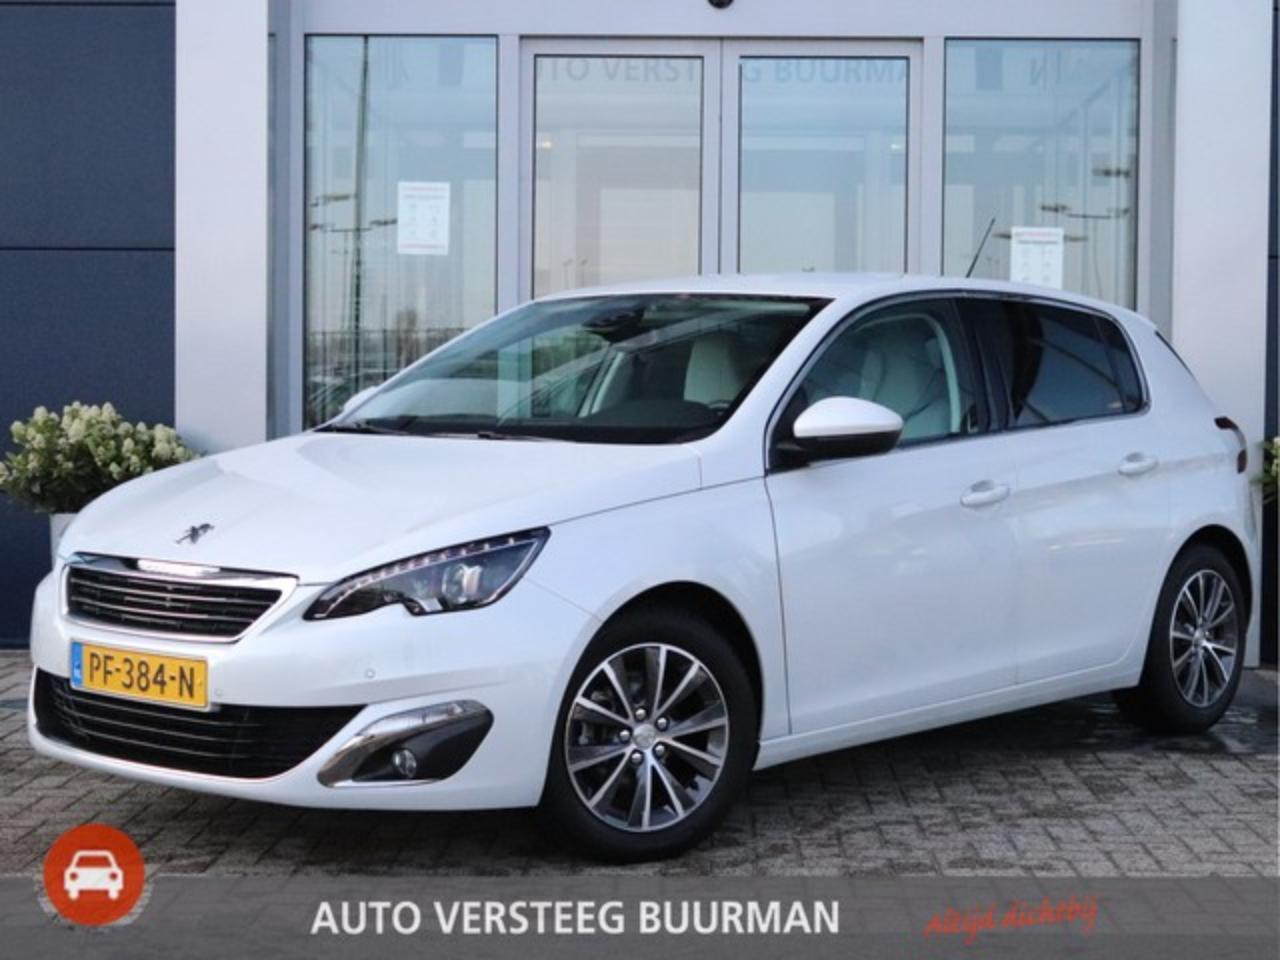 Peugeot 308 Allure 1.2 PureTech 110-PK Trekhaak, Camera, Navig